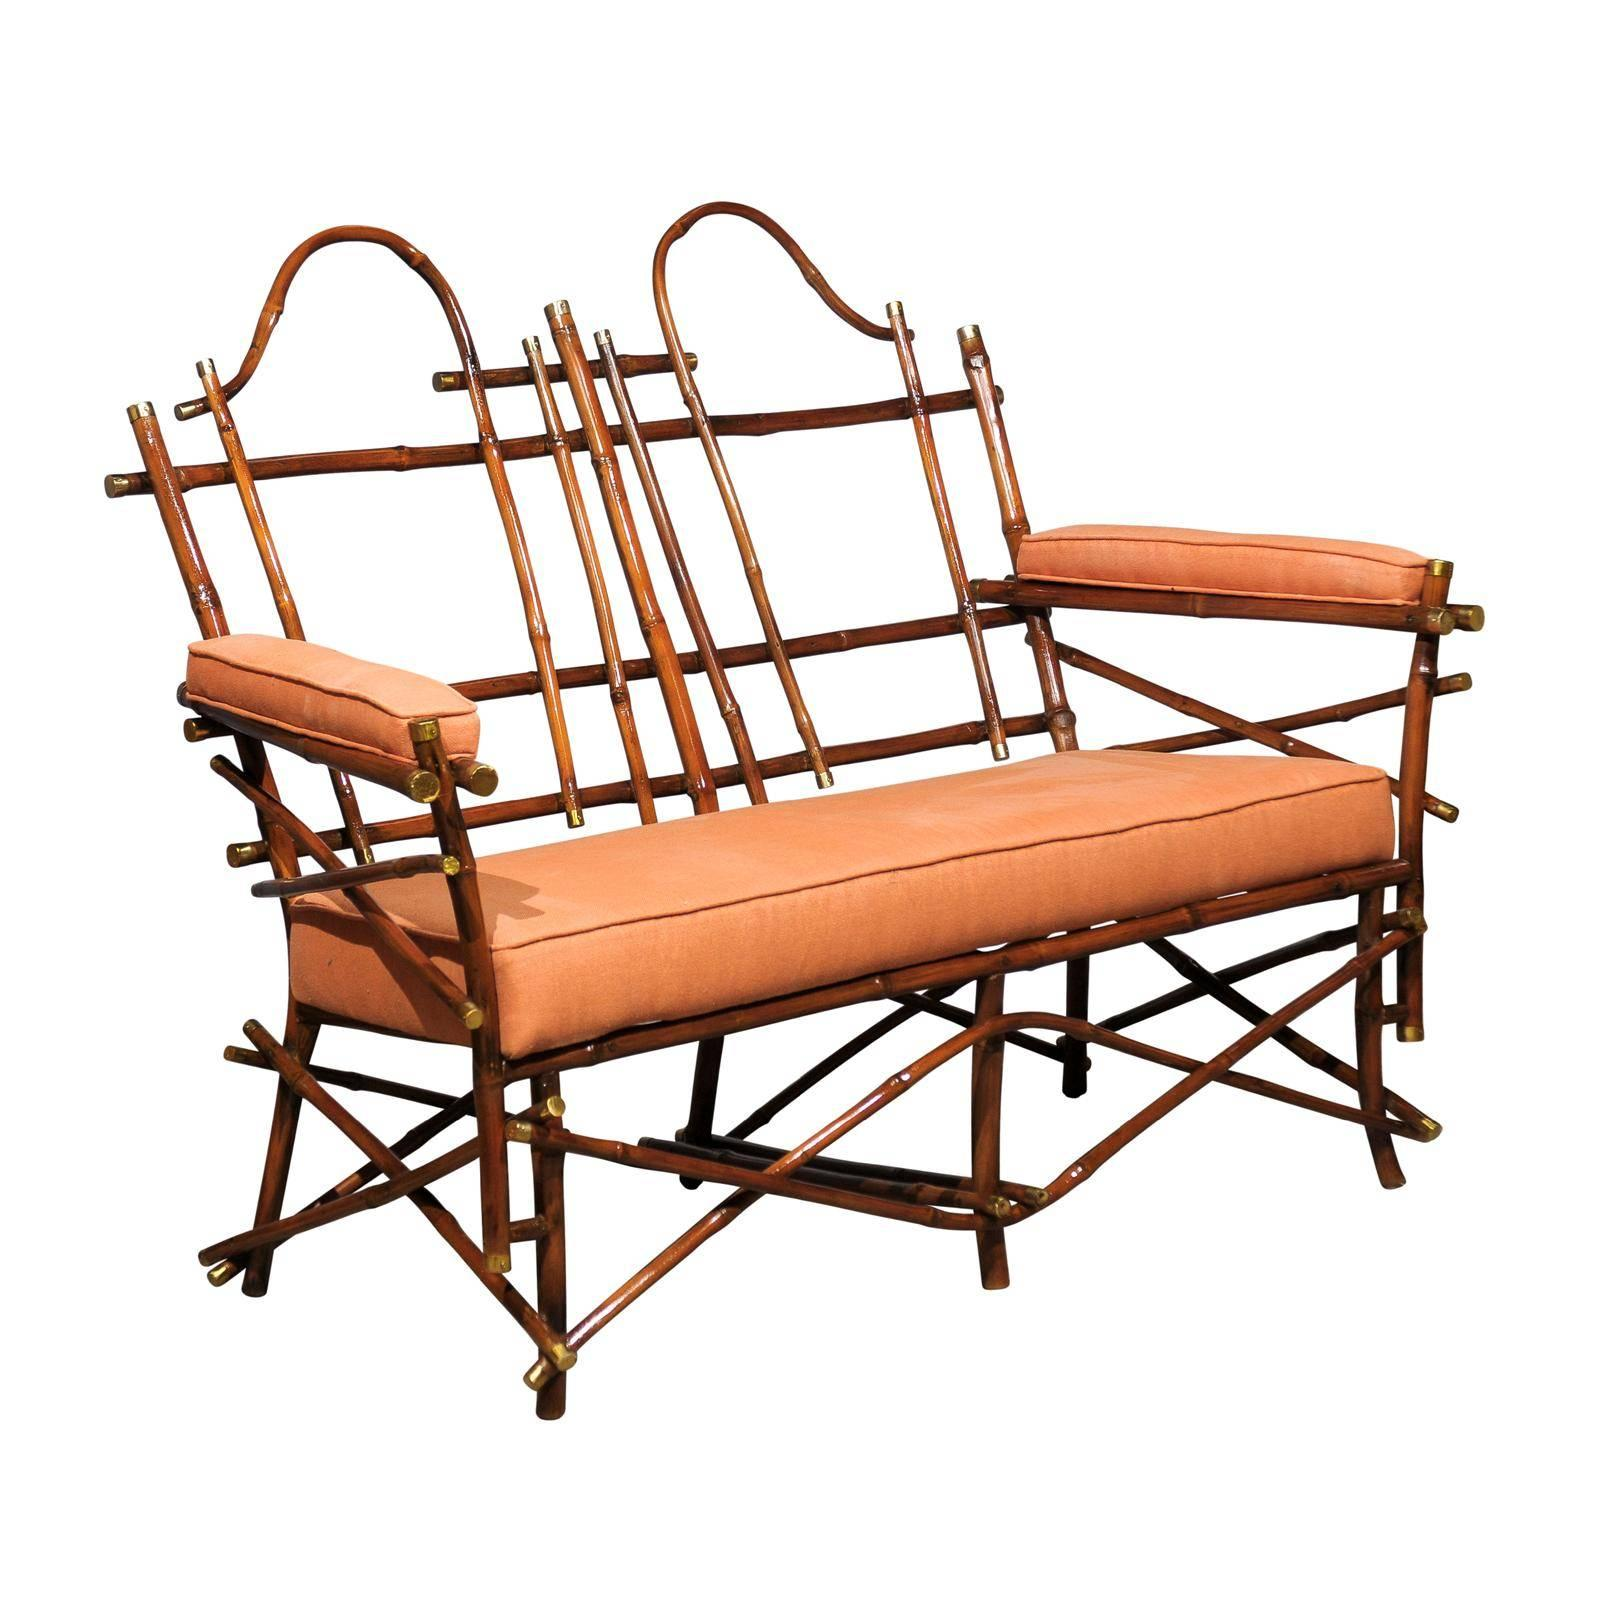 Lovely Vintage Bamboo and Brass Settee